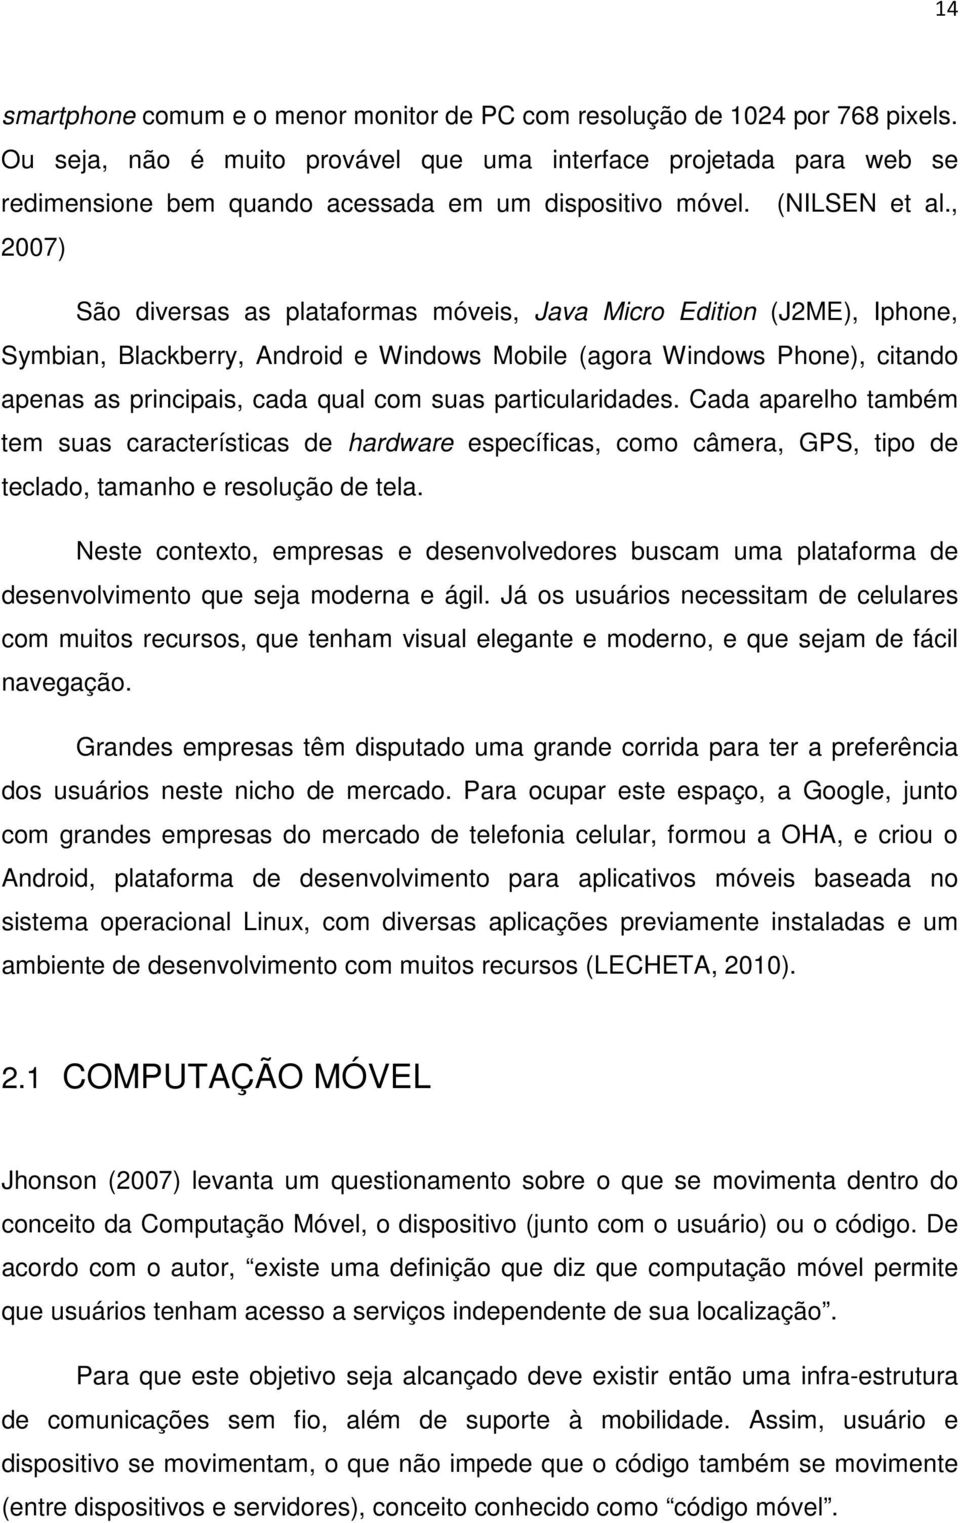 , 2007) São diversas as plataformas móveis, Java Micro Edition (J2ME), Iphone, Symbian, Blackberry, Android e Windows Mobile (agora Windows Phone), citando apenas as principais, cada qual com suas